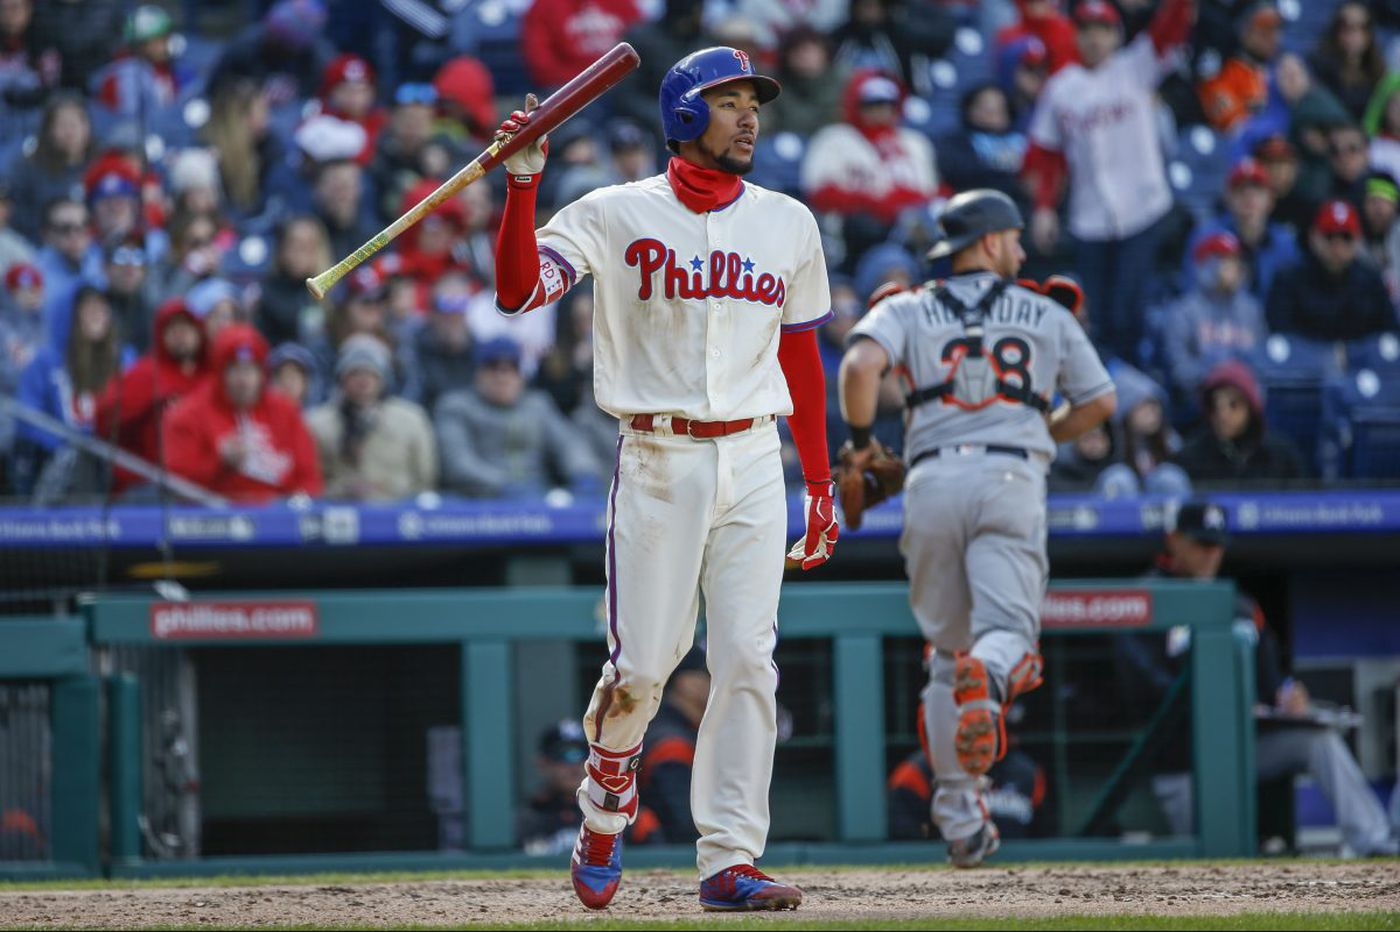 Phillies give struggling J.P. Crawford the night off